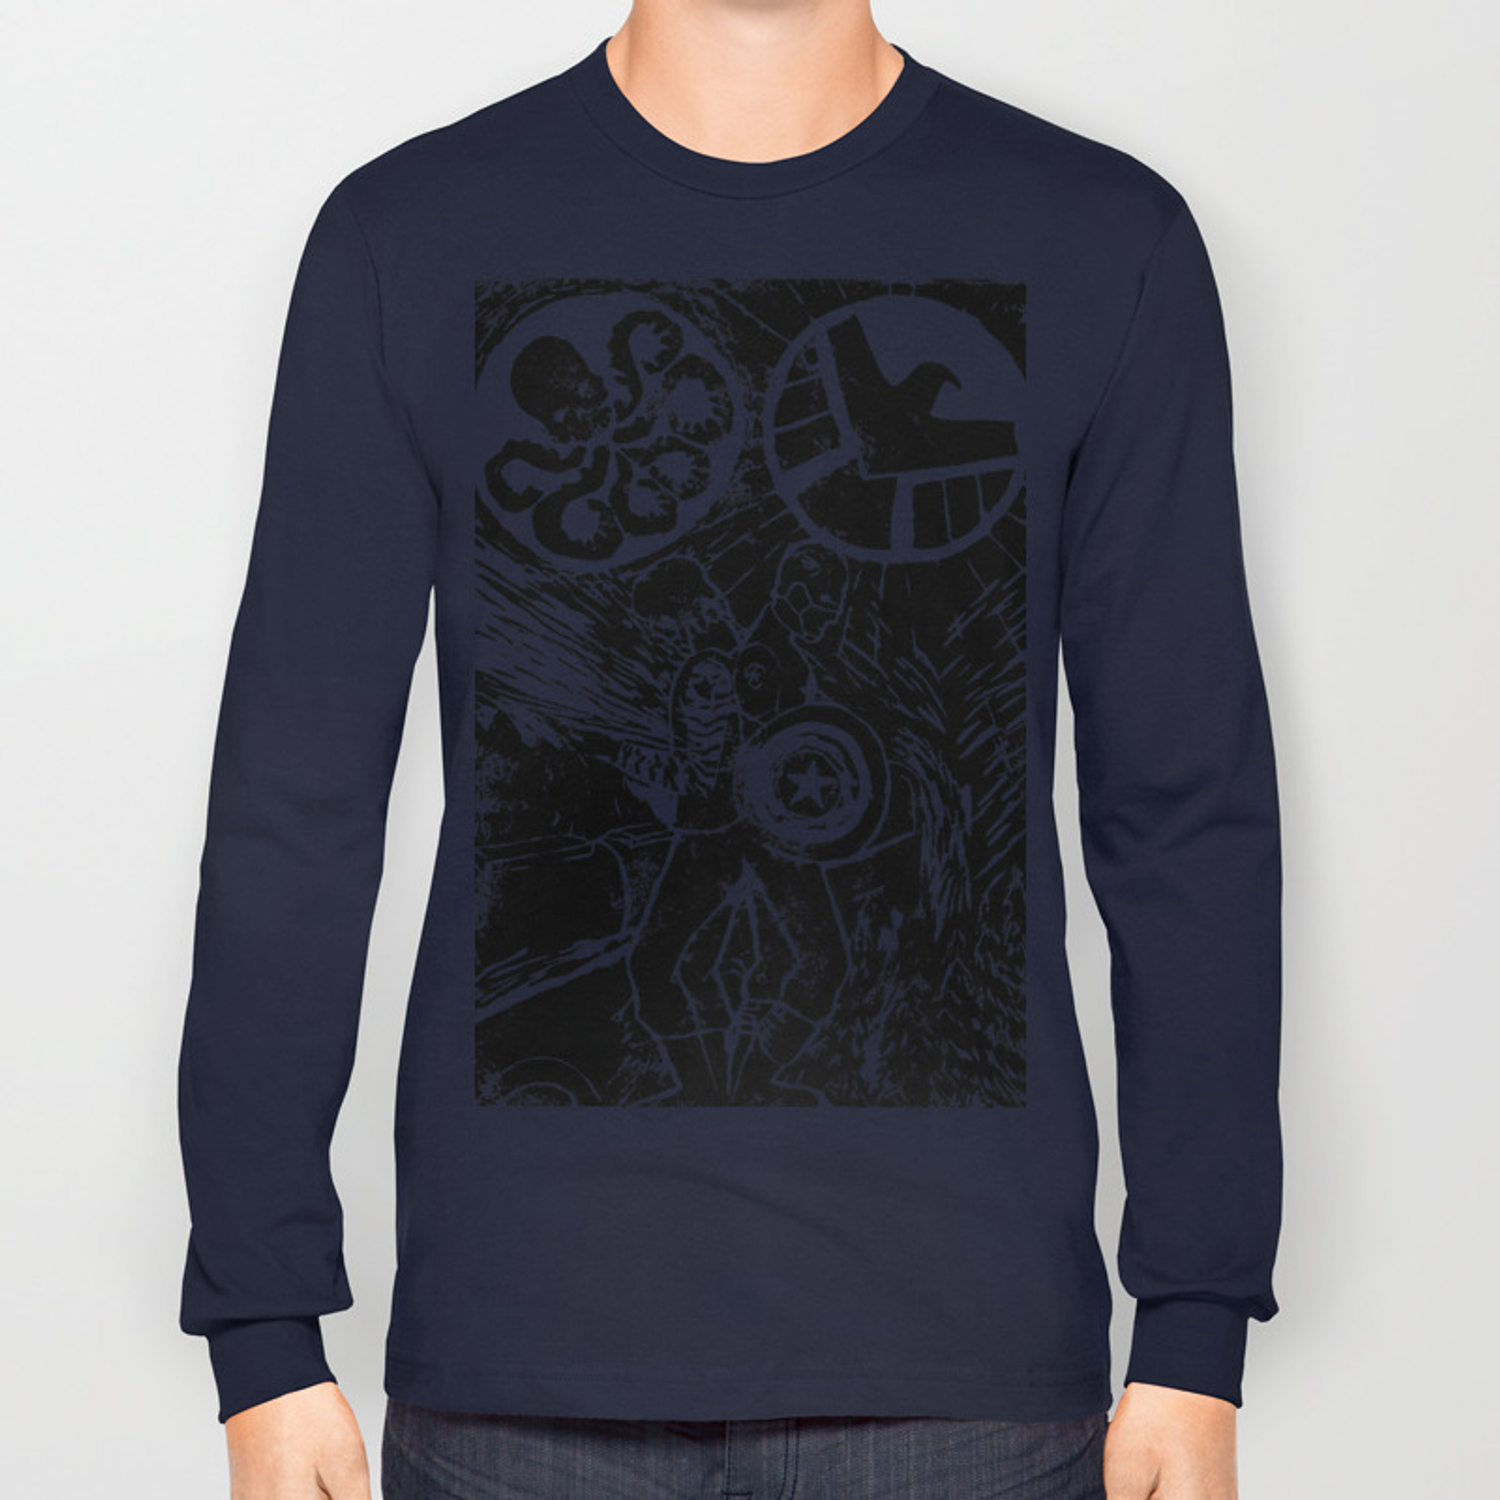 7151f30f684f Captain America:The Winter Soldier print design Long Sleeve T-shirt by  chalenmimi | Society6